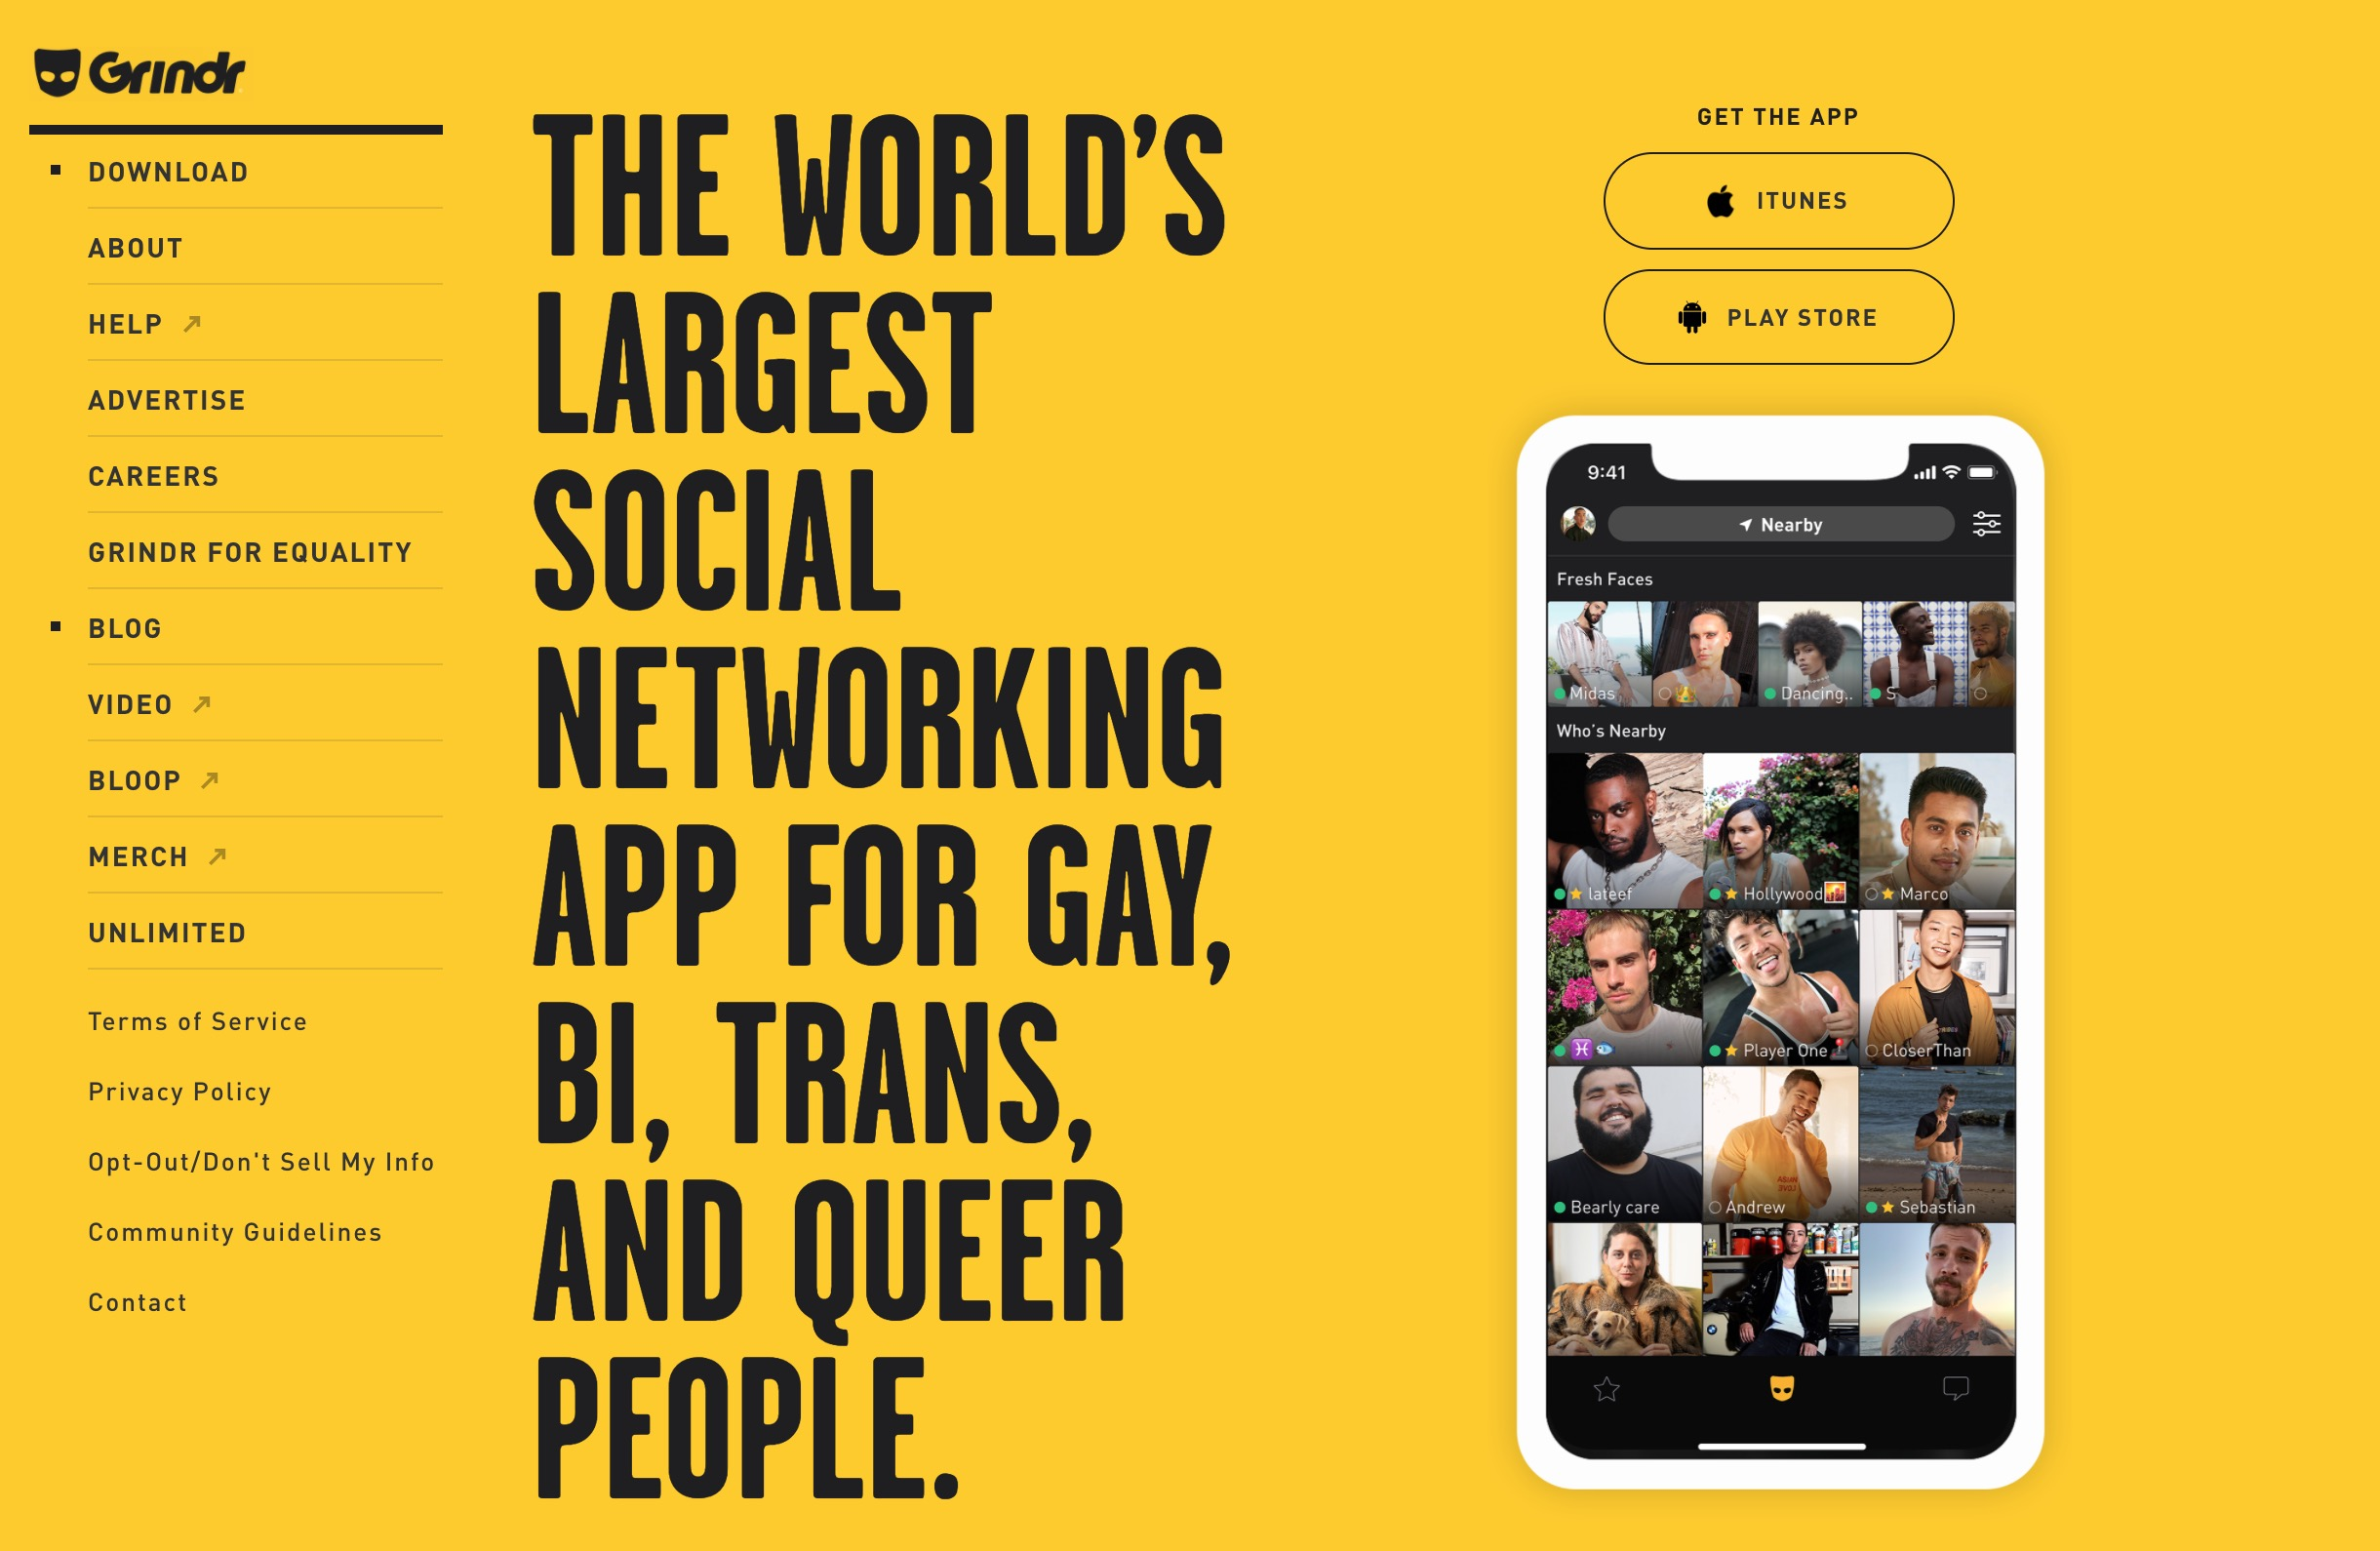 Grindr main page